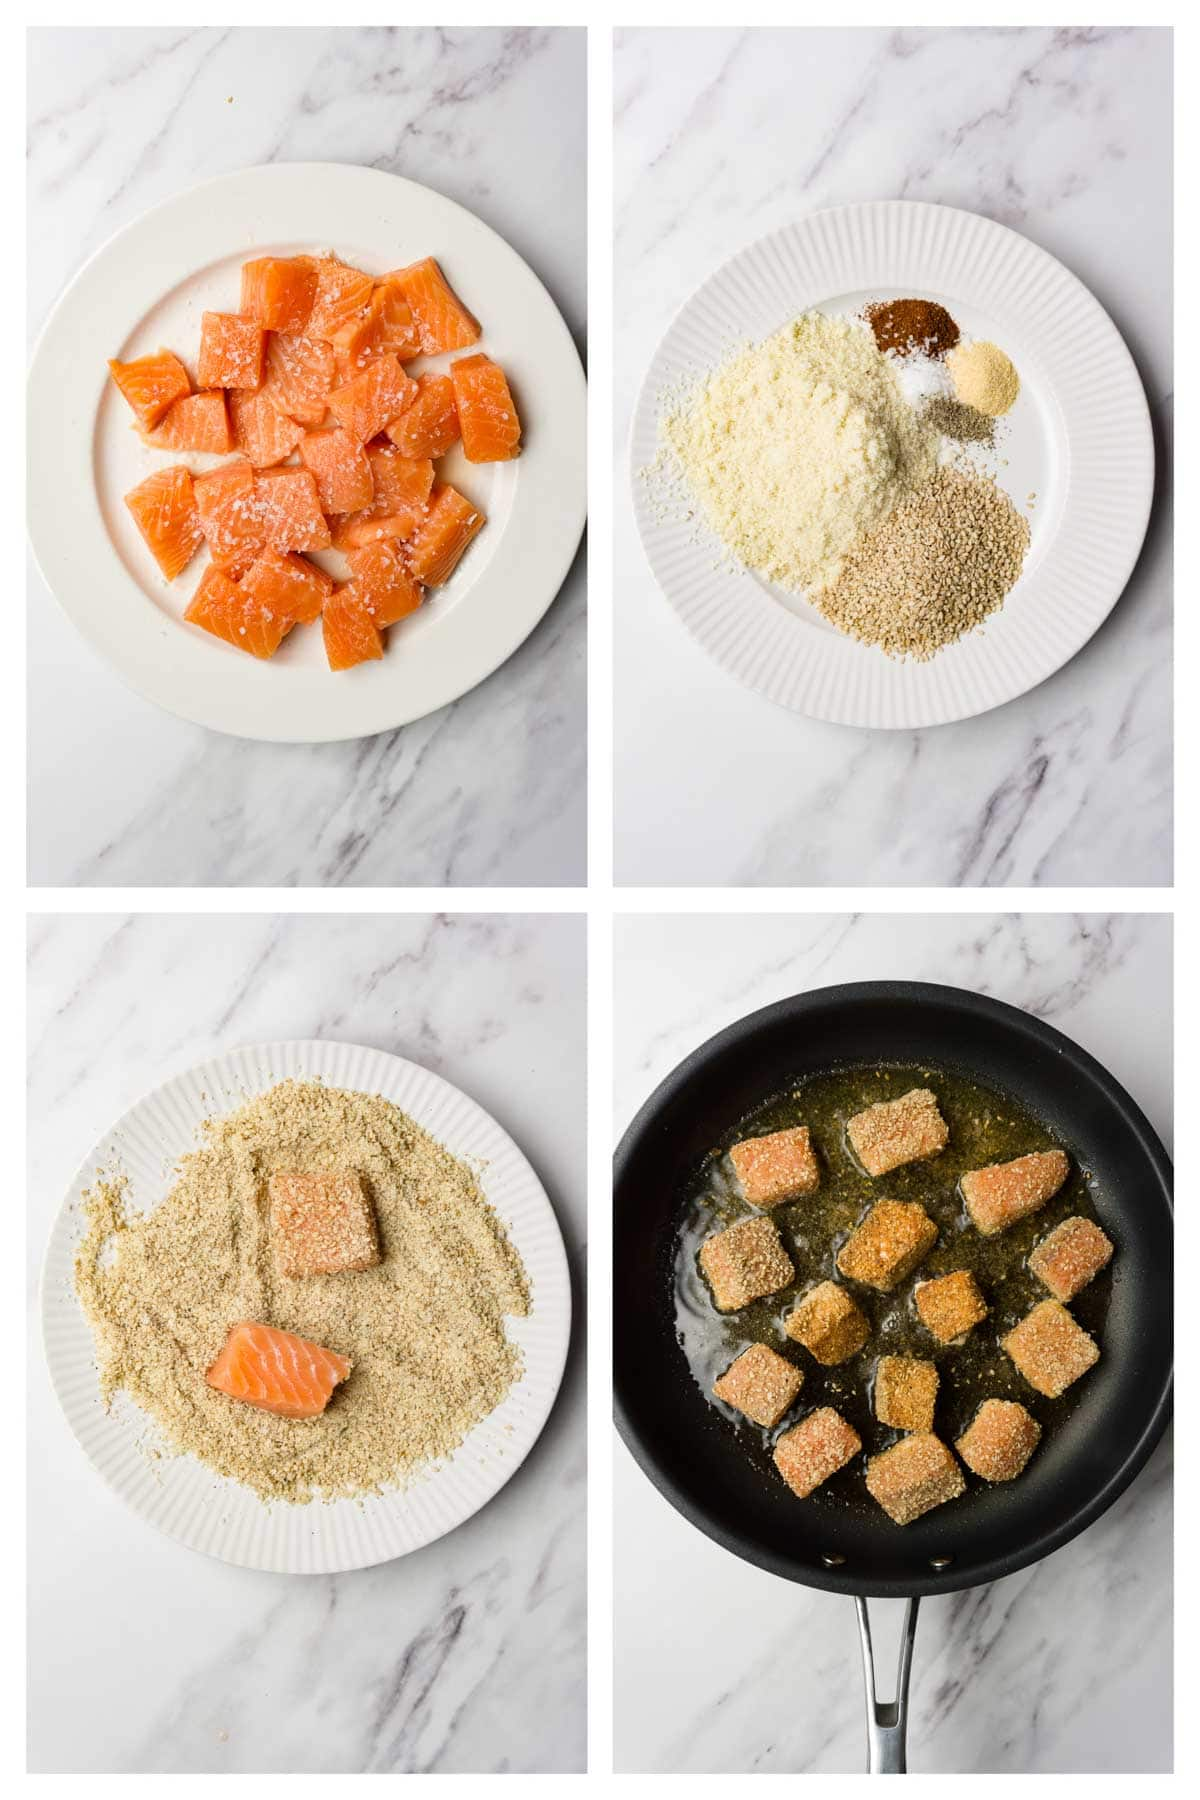 4 images collage picture showing how to make salmon nuggets.